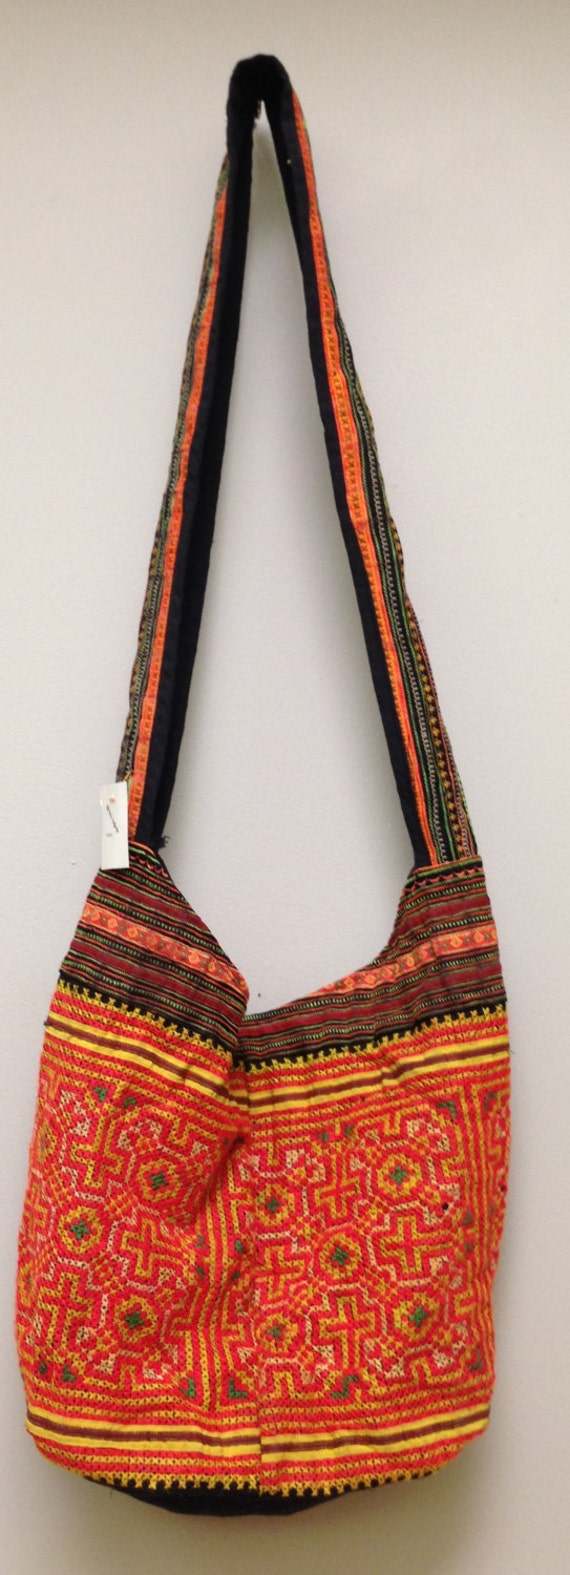 Chinese Bag Hmong Embroidered Purse Hill Tribe Handmade Shoulder Bag Purse Hand Woven Colorful Gift for Her One of Kind Tribal